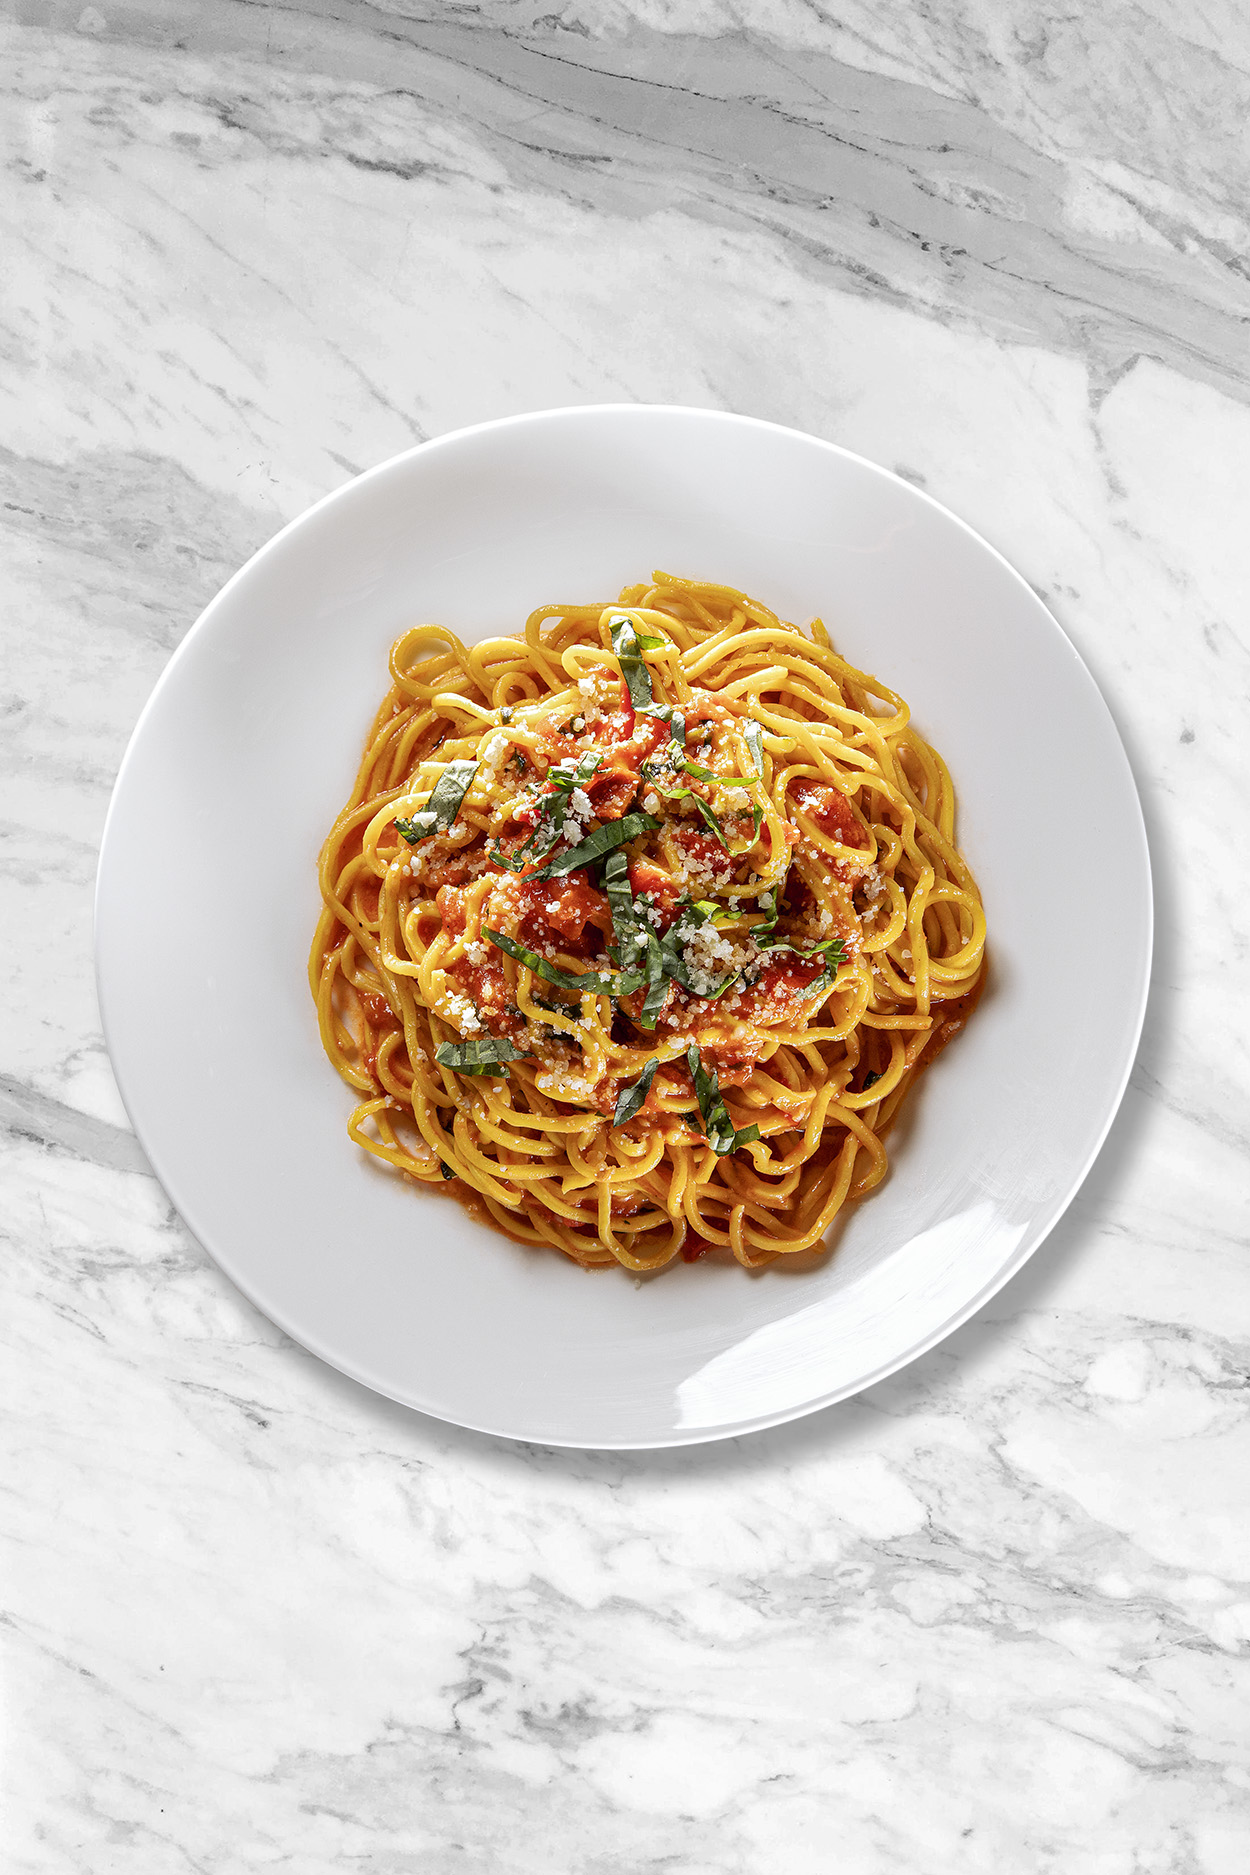 A plate of spaghetti with tomato sauce